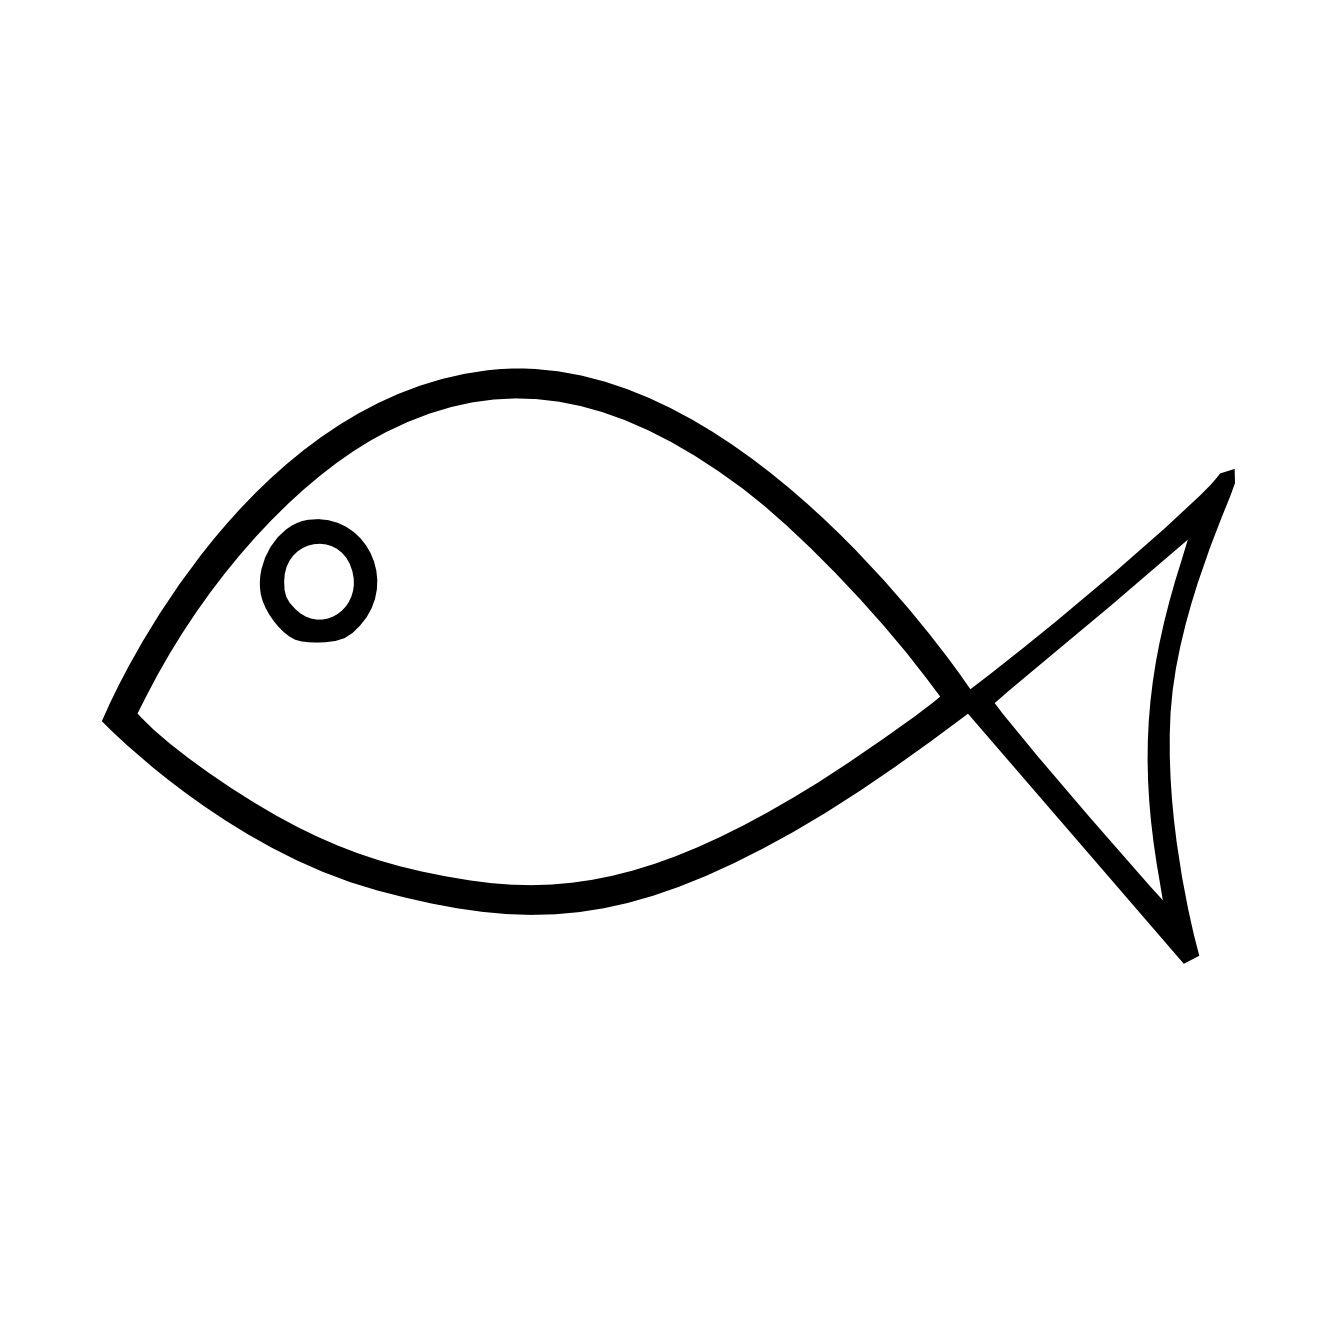 Fish with bubbles clipart black and white jpg black and white Fish Clip Art Printable Free | Clipart Panda - Free Clipart Images jpg black and white